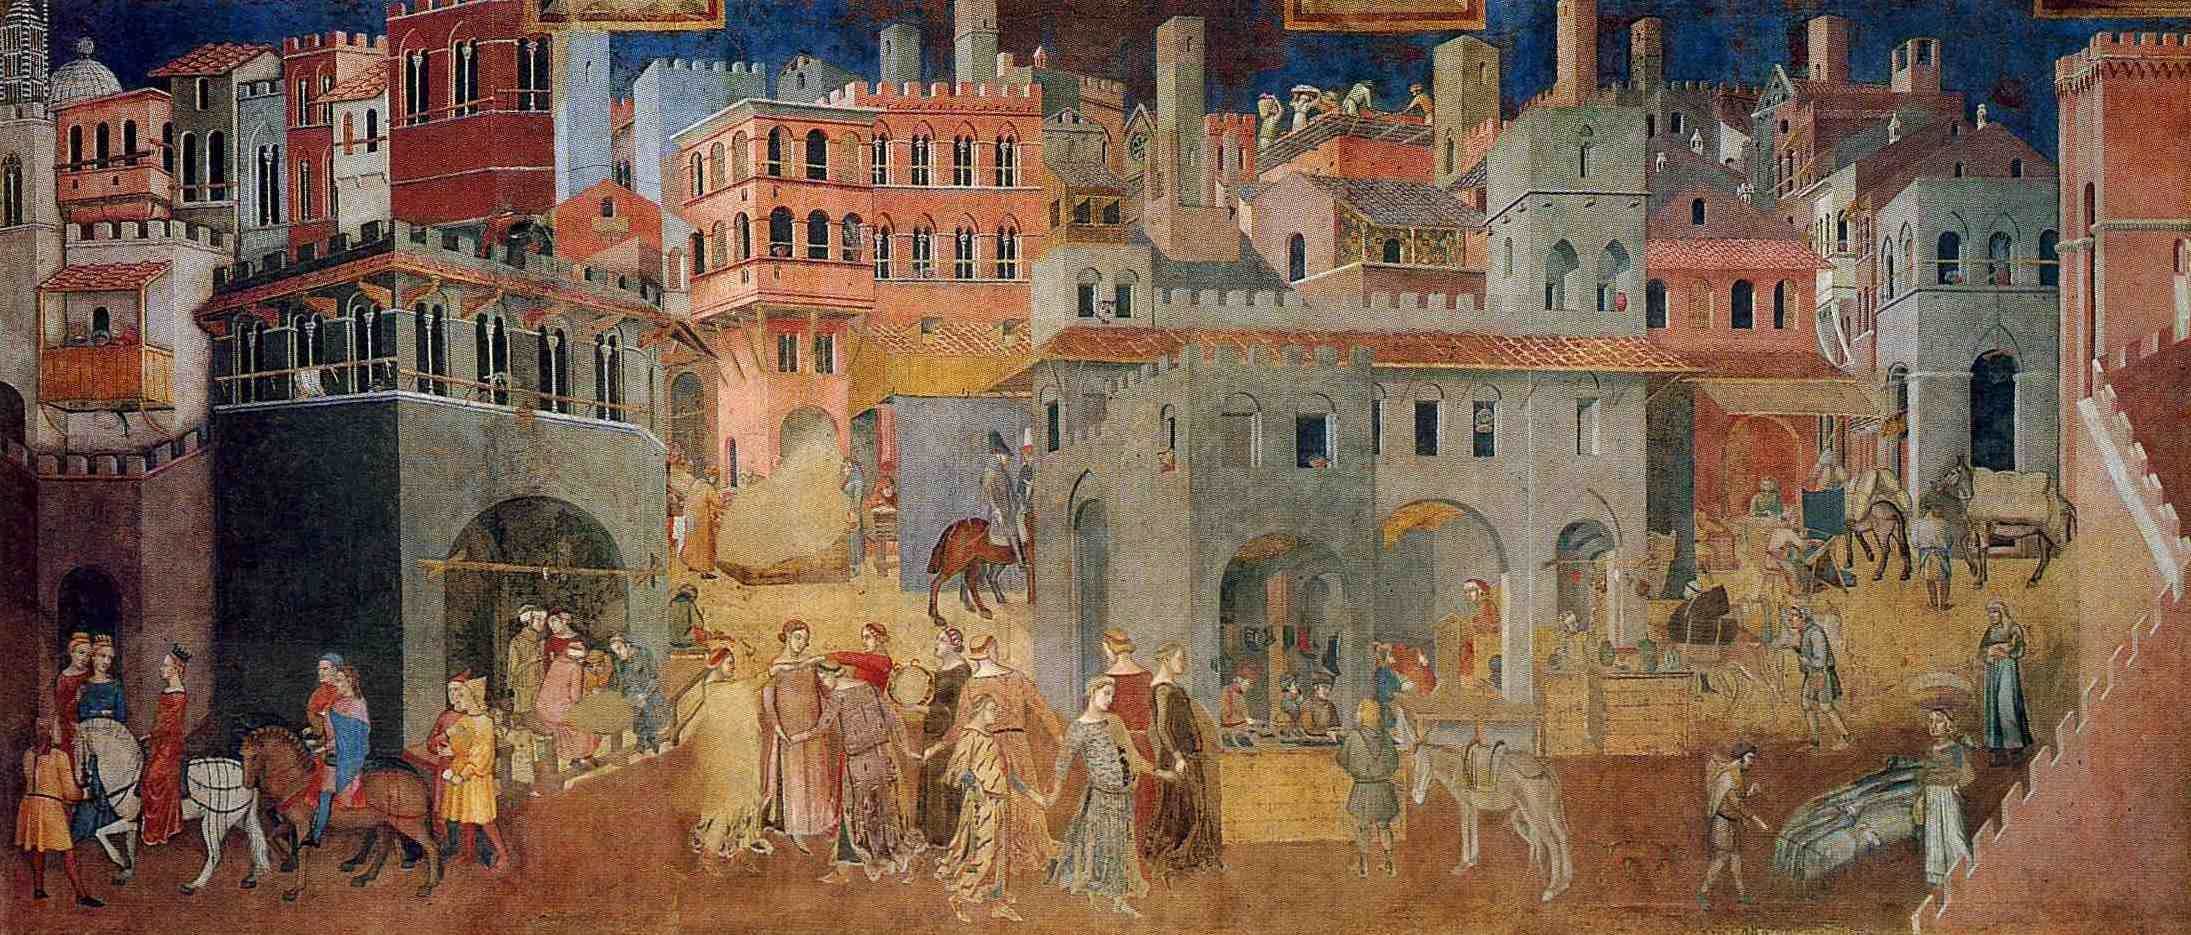 the positive impact of the renaissance in italy in the 14th century Setting the stage during the late middle ages, europe suffered from  italy  had three advantages that made it the birthplace of the renaissance:  more  positively, lorenzo was a  renaissance women had little influence in politics.